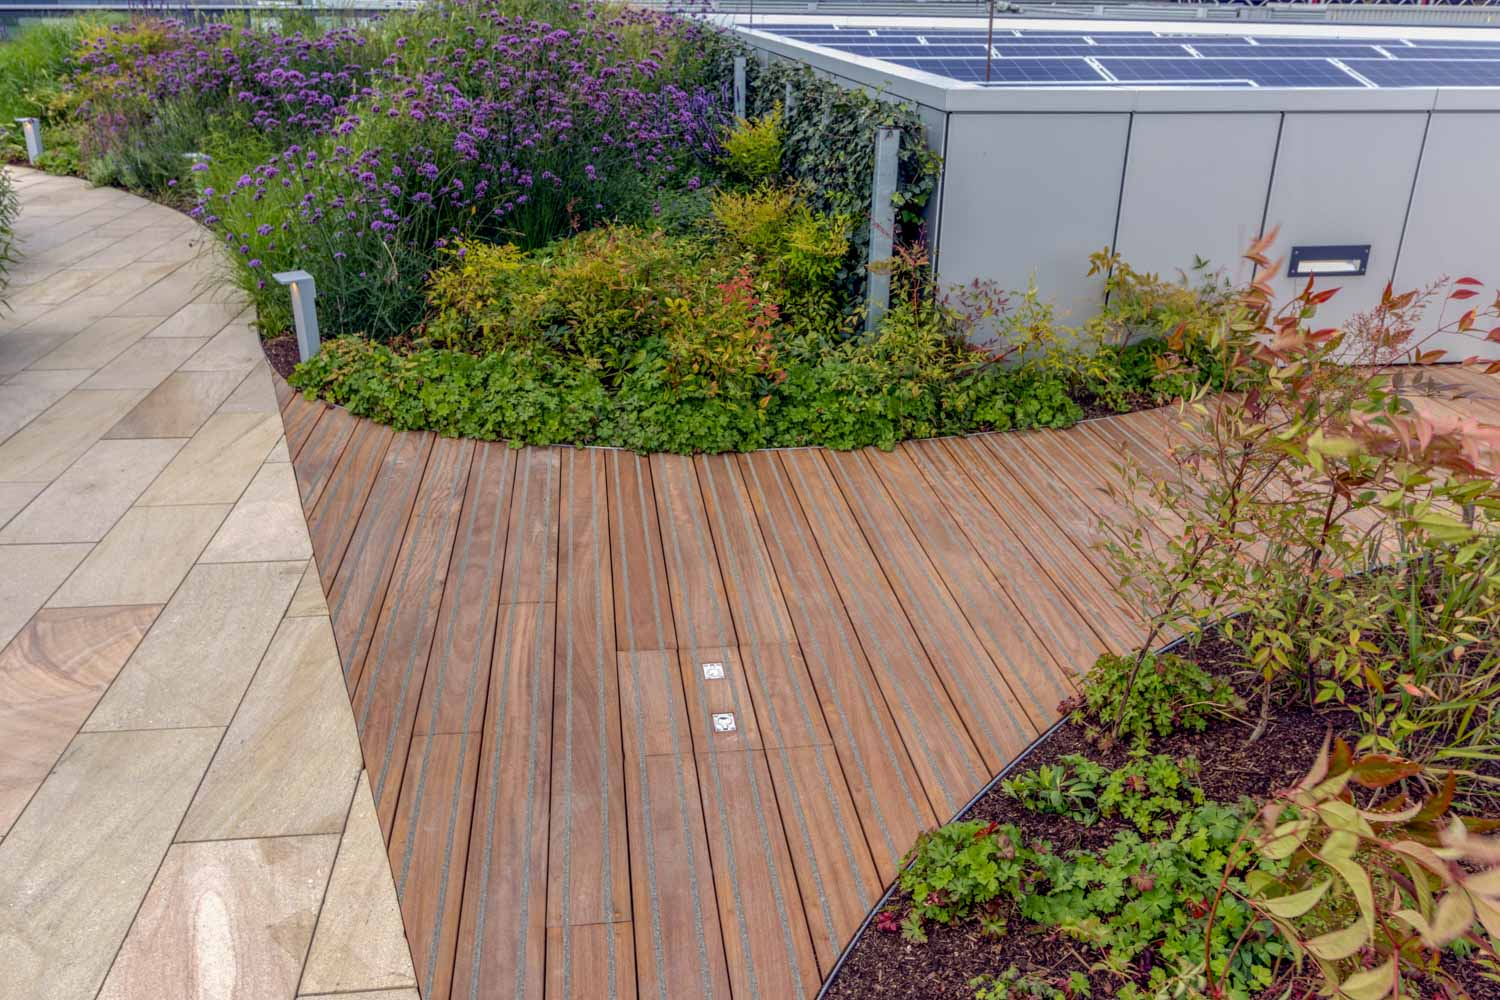 Wooden decking area of roof terrace ensures relaxation for workers